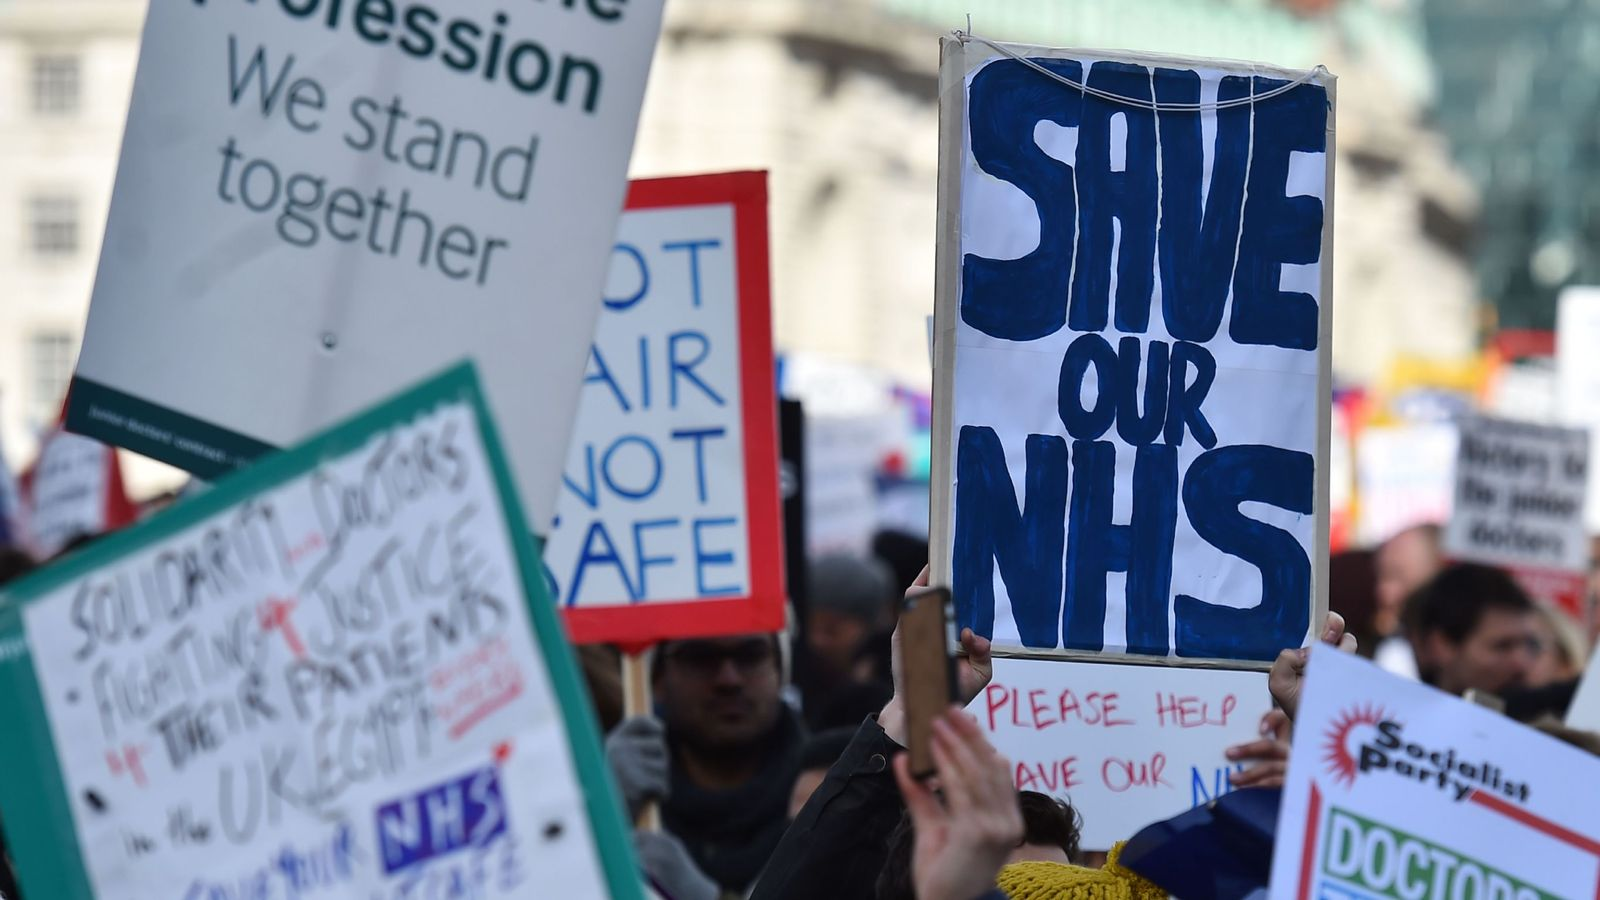 Nhs provider search